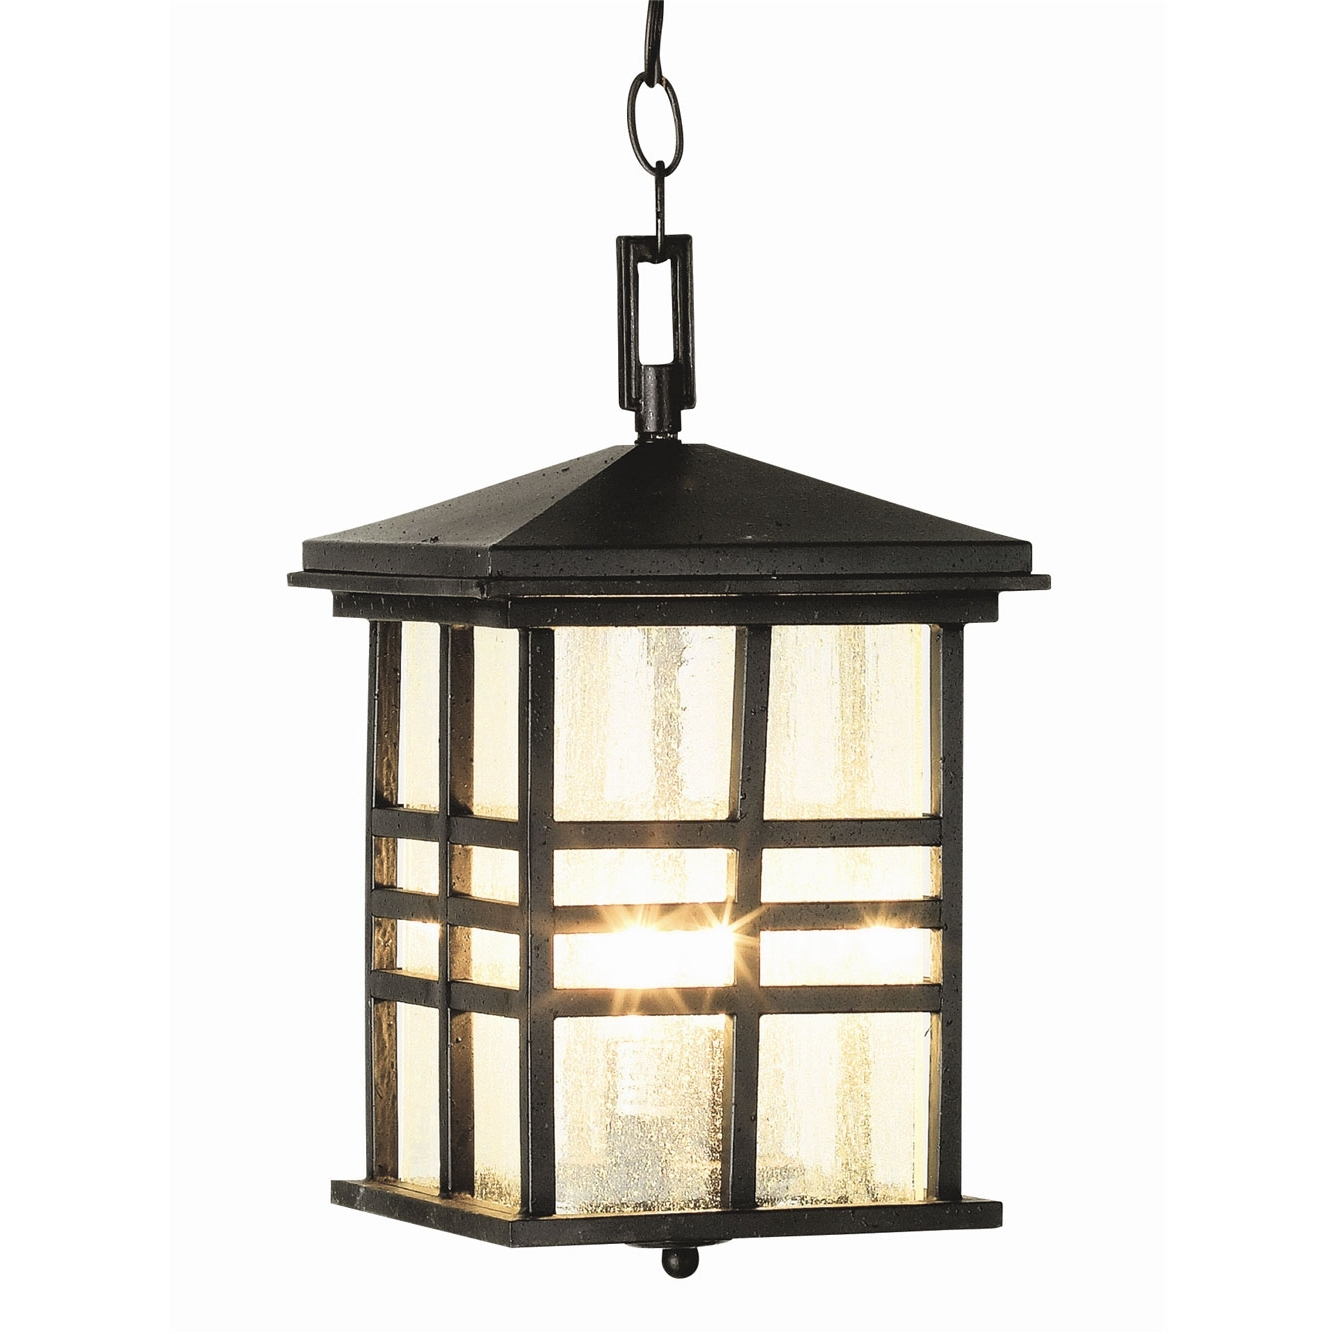 4638 Bk Throughout Preferred Outdoor Hanging Lanterns (Gallery 10 of 20)